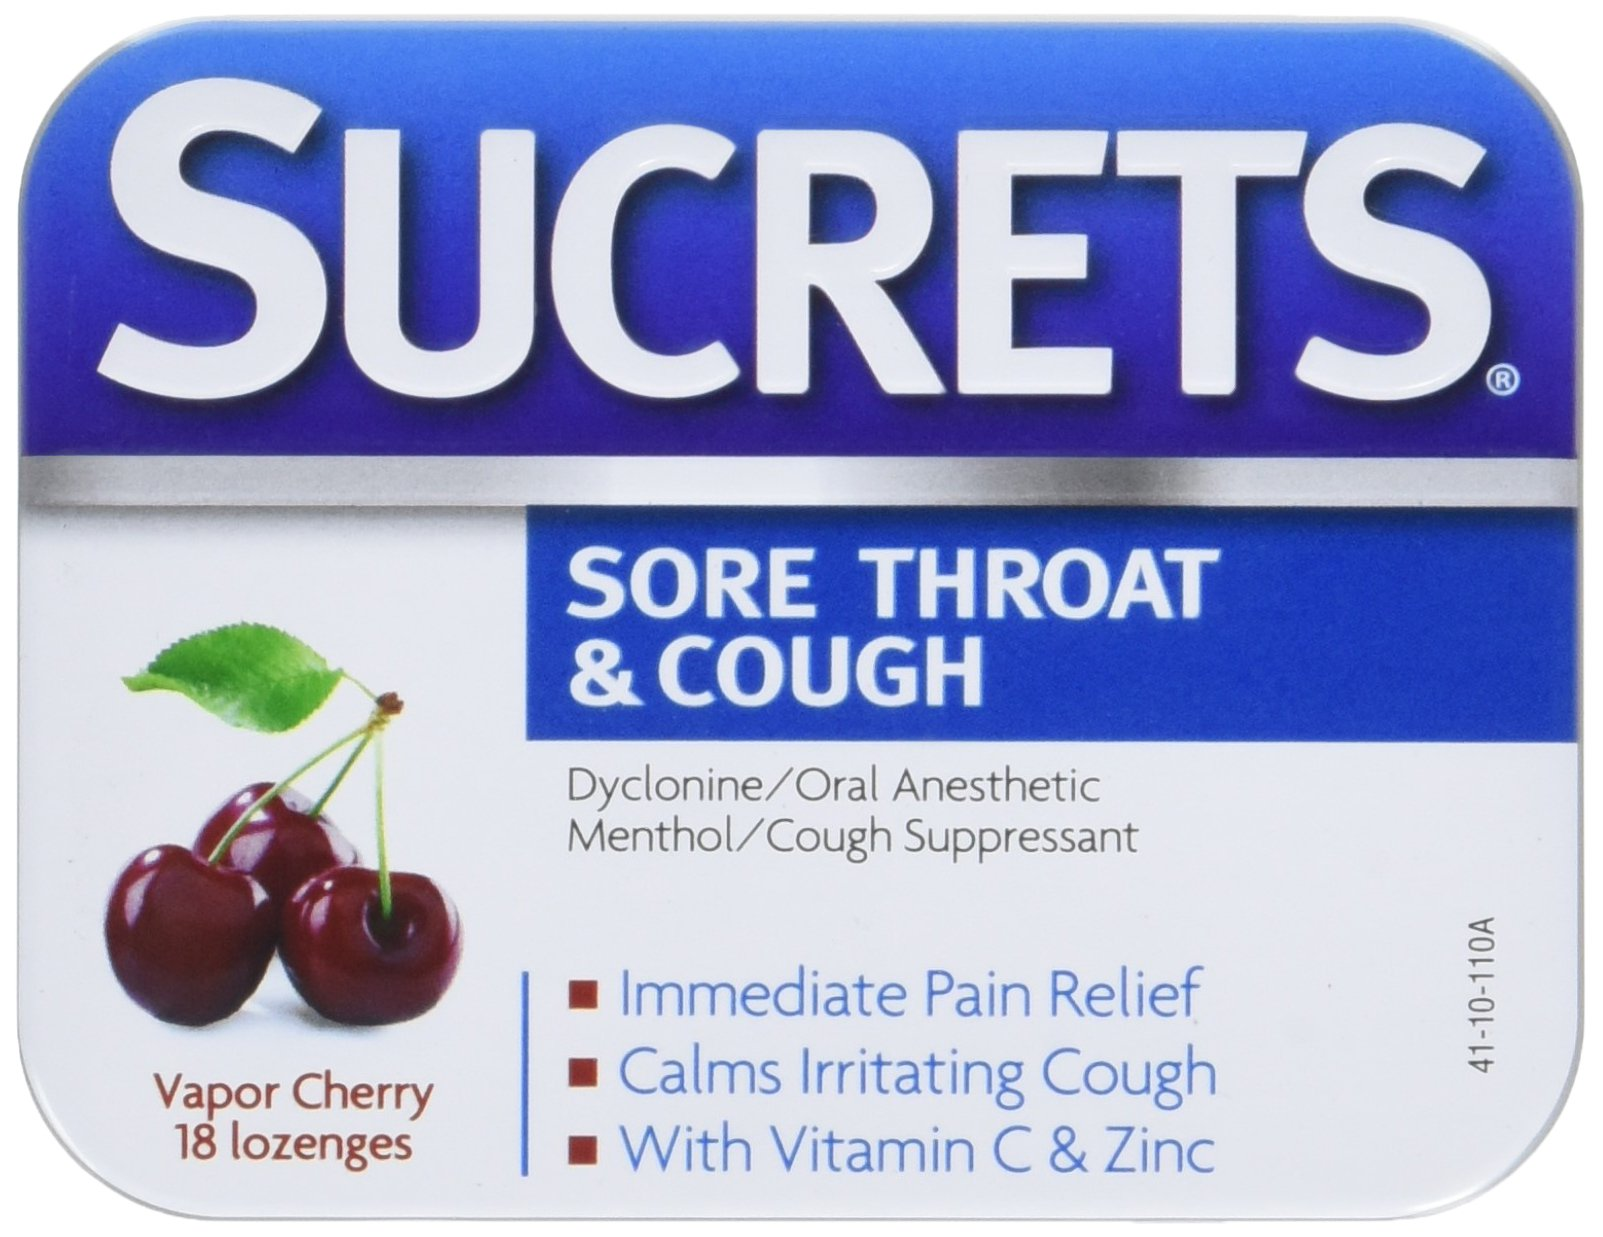 Sucrets Sore Throat Lozenges, Vapor Cherry, 18 Count. Sore Throat & Cough Relief, Dyclonine hydrochloride 3.0 mg and Menthol 6.0 mg for immediate pain relief, Iconic Sucrets Tin. (Pack of 6)